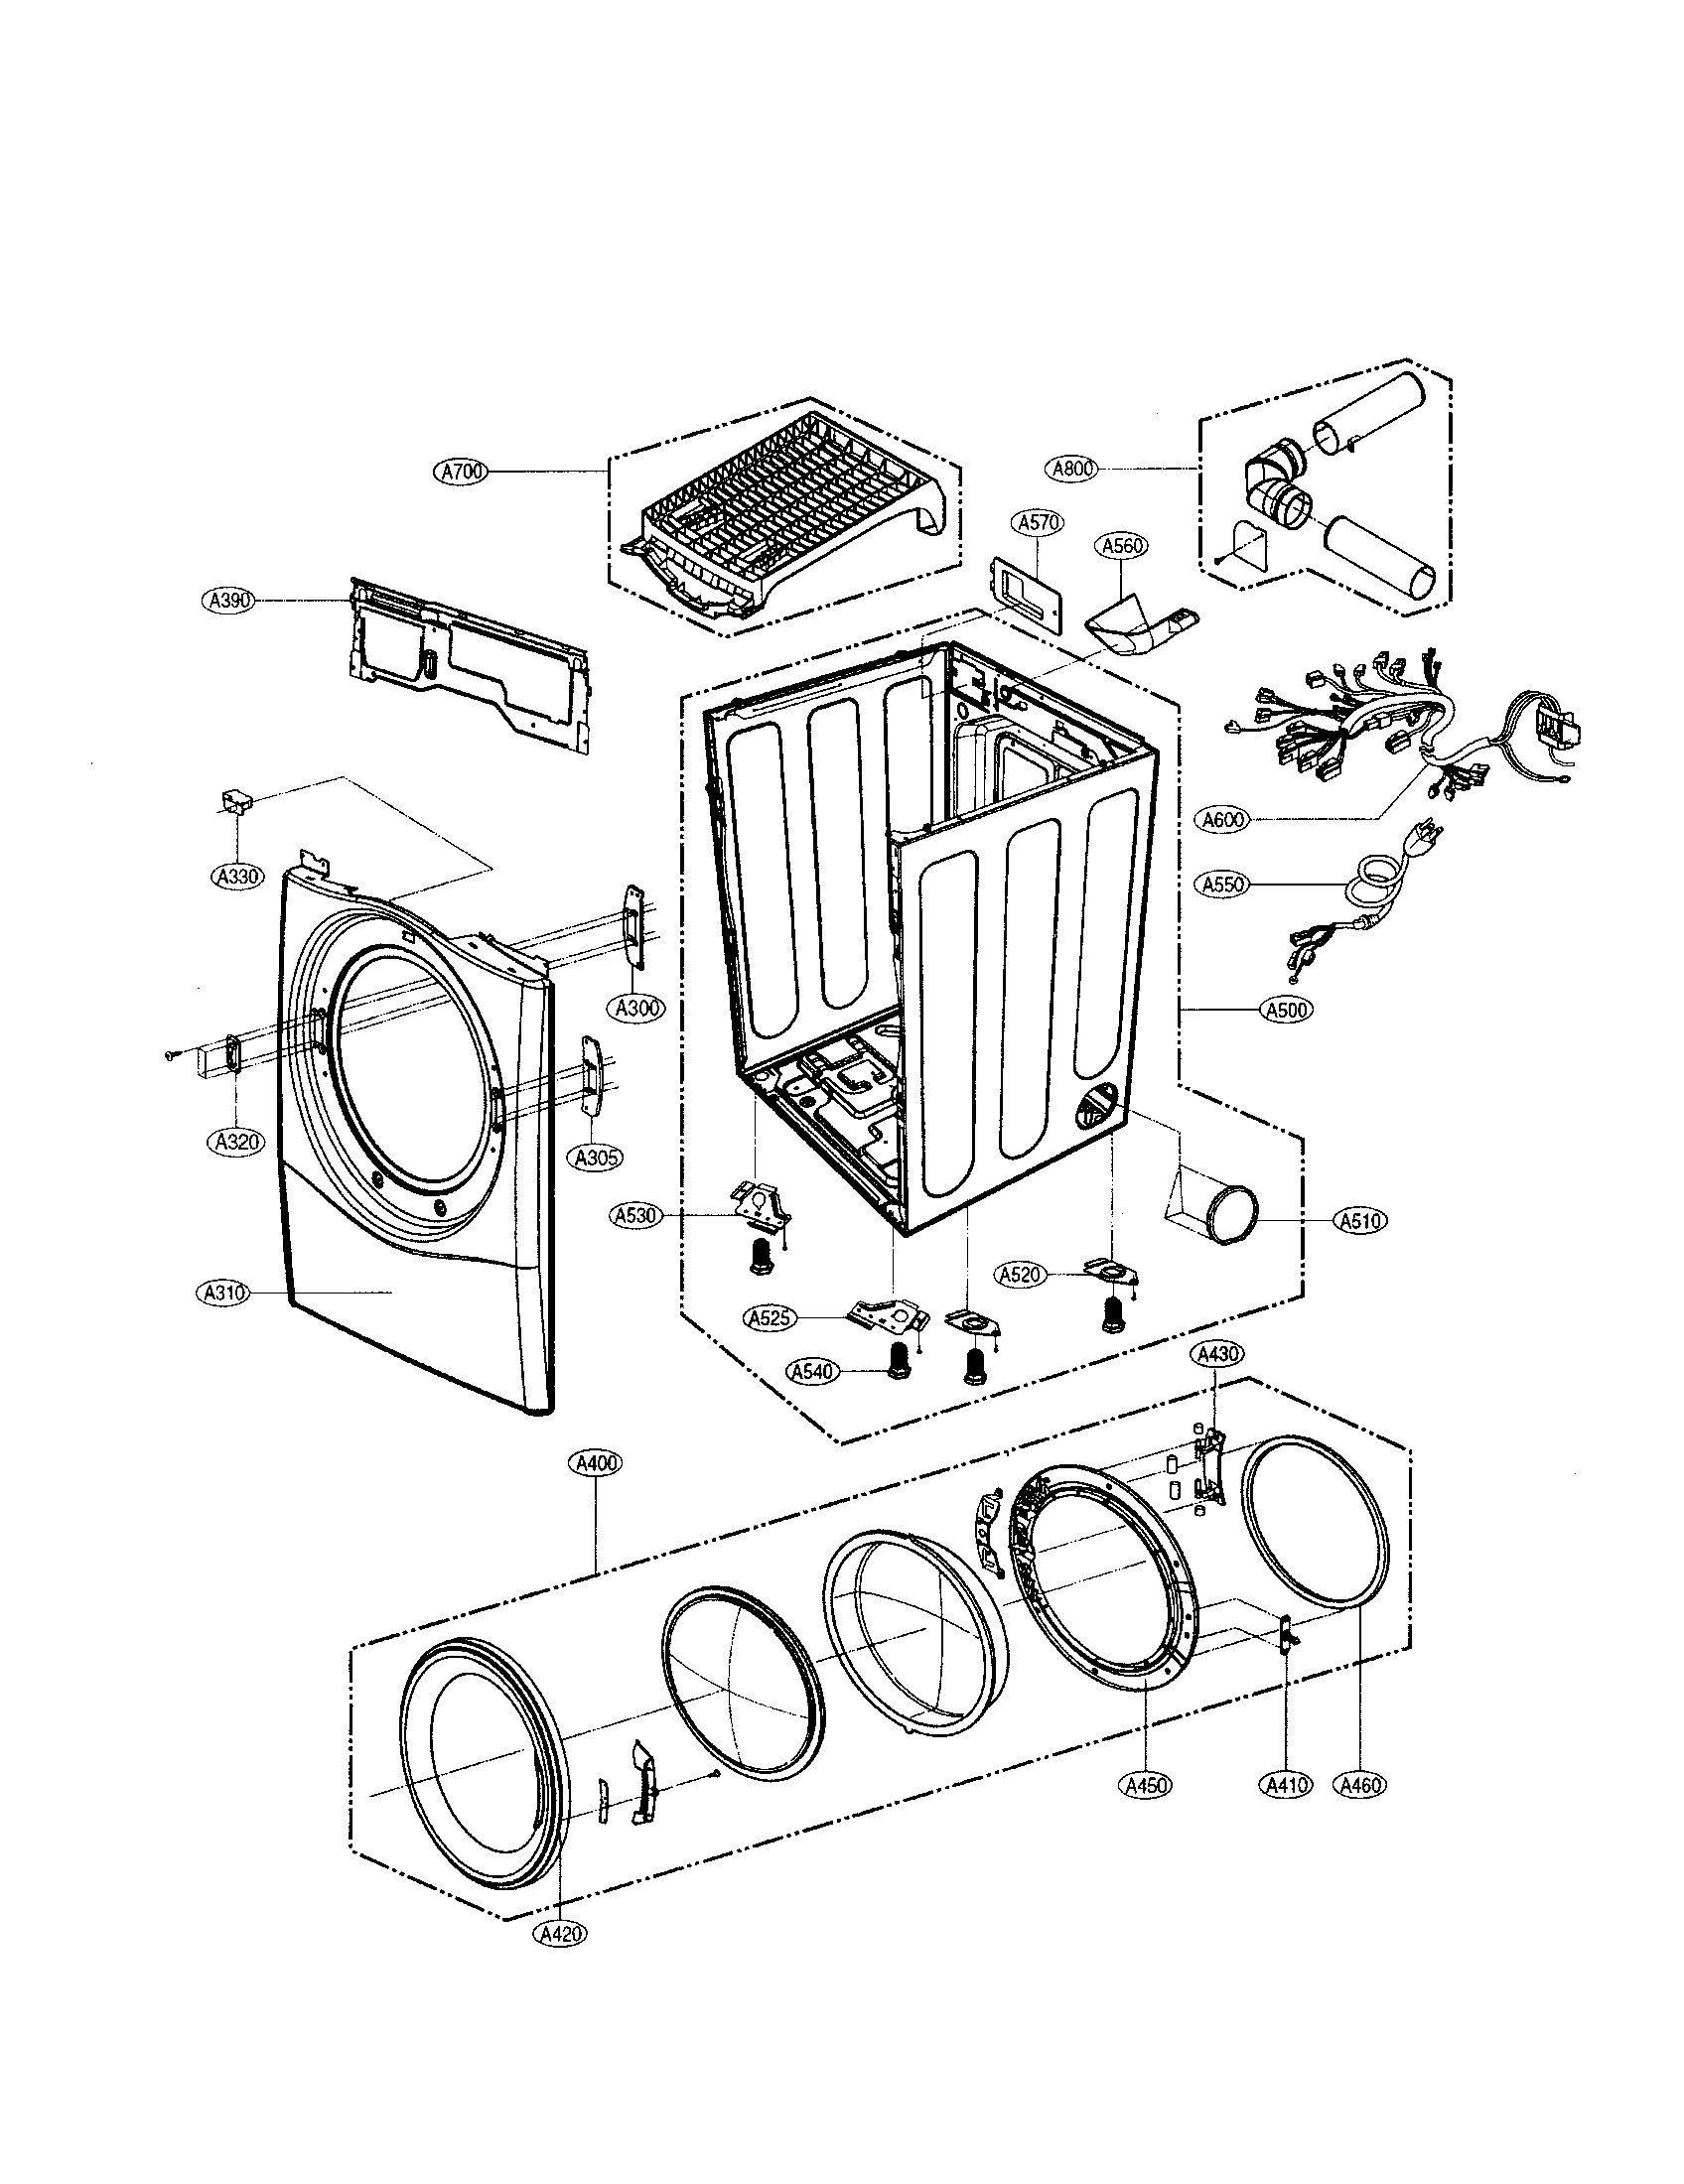 CABINET/DOOR Diagram & Parts List for Model dle2512w LG